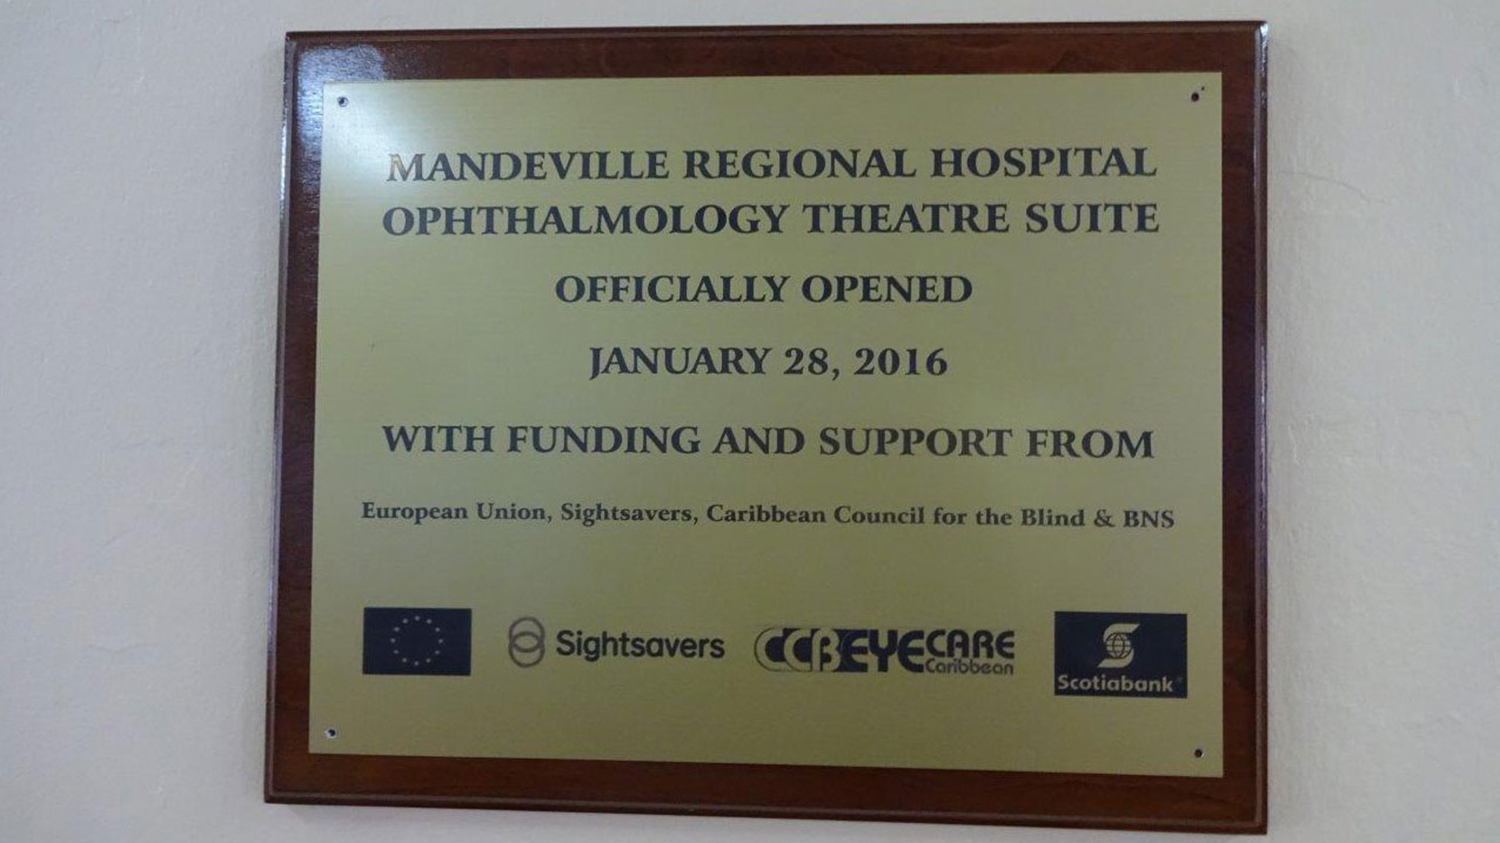 A photo of a plaque stating the Mandeville Regional Hospital Ophthalmology Theatre Suite officially opened in January 2016 with funding and support from the EU, Sightsavers, Caribbean Council for the Blind and BNS.